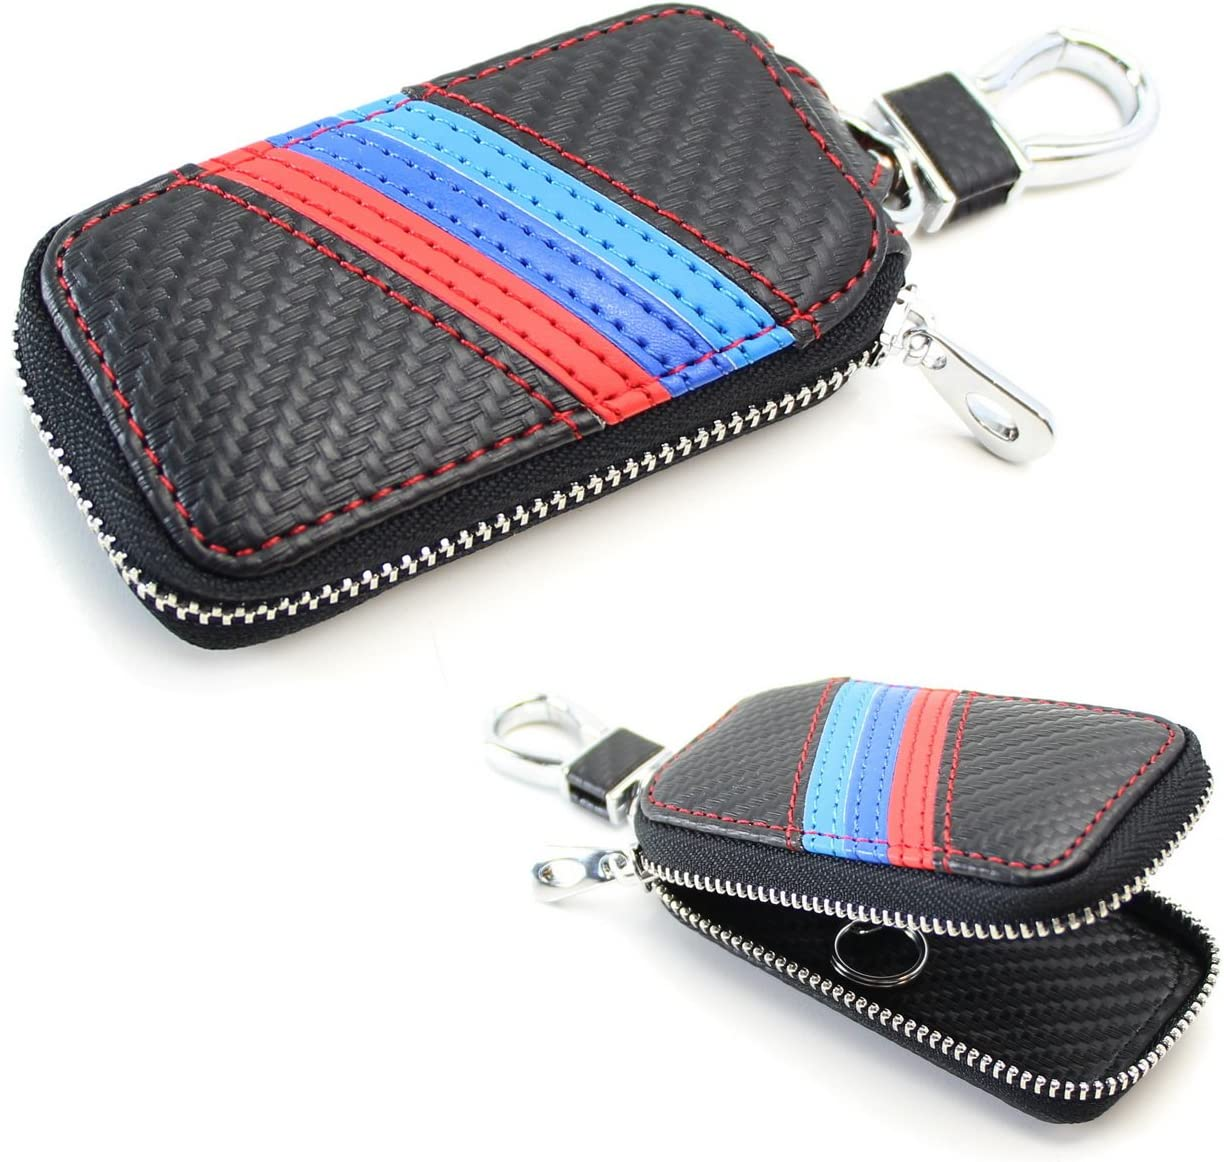 iJDMTOY (1 M-Colored Stripe Carbon Fiber Pattern Leather Key Holder Cover Wallet Compatible with BMW